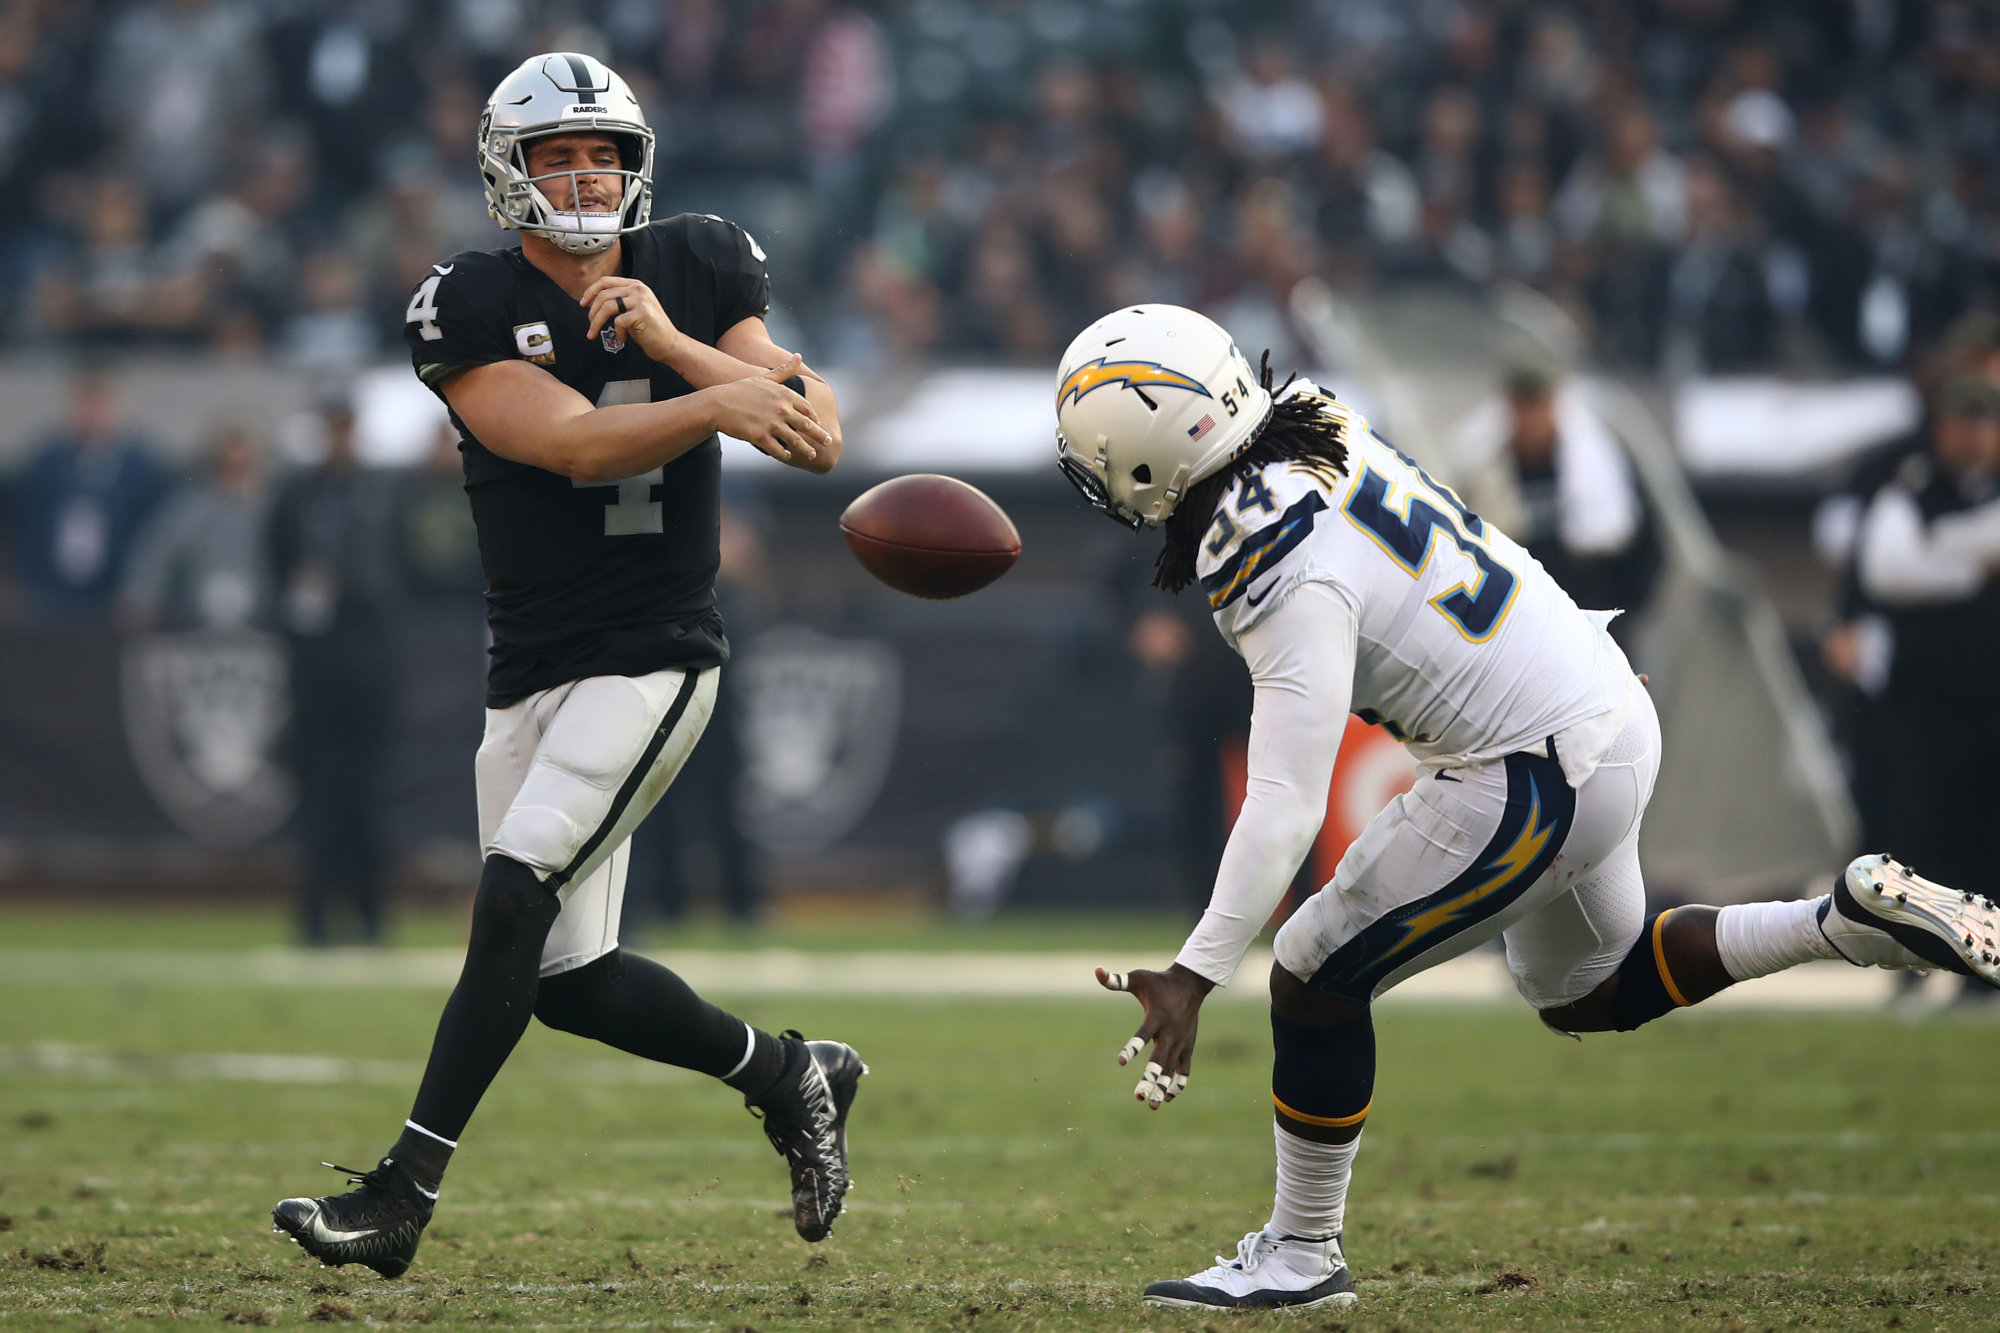 OAKLAND, CA - NOVEMBER 11: Derek Carr #4 of the Oakland Raiders throws the ball into the ground on fourth down during their NFL game against the Los Angeles Chargers at Oakland-Alameda County Coliseum on November 11, 2018 in Oakland, California. (Photo by Ezra Shaw/Getty Images)